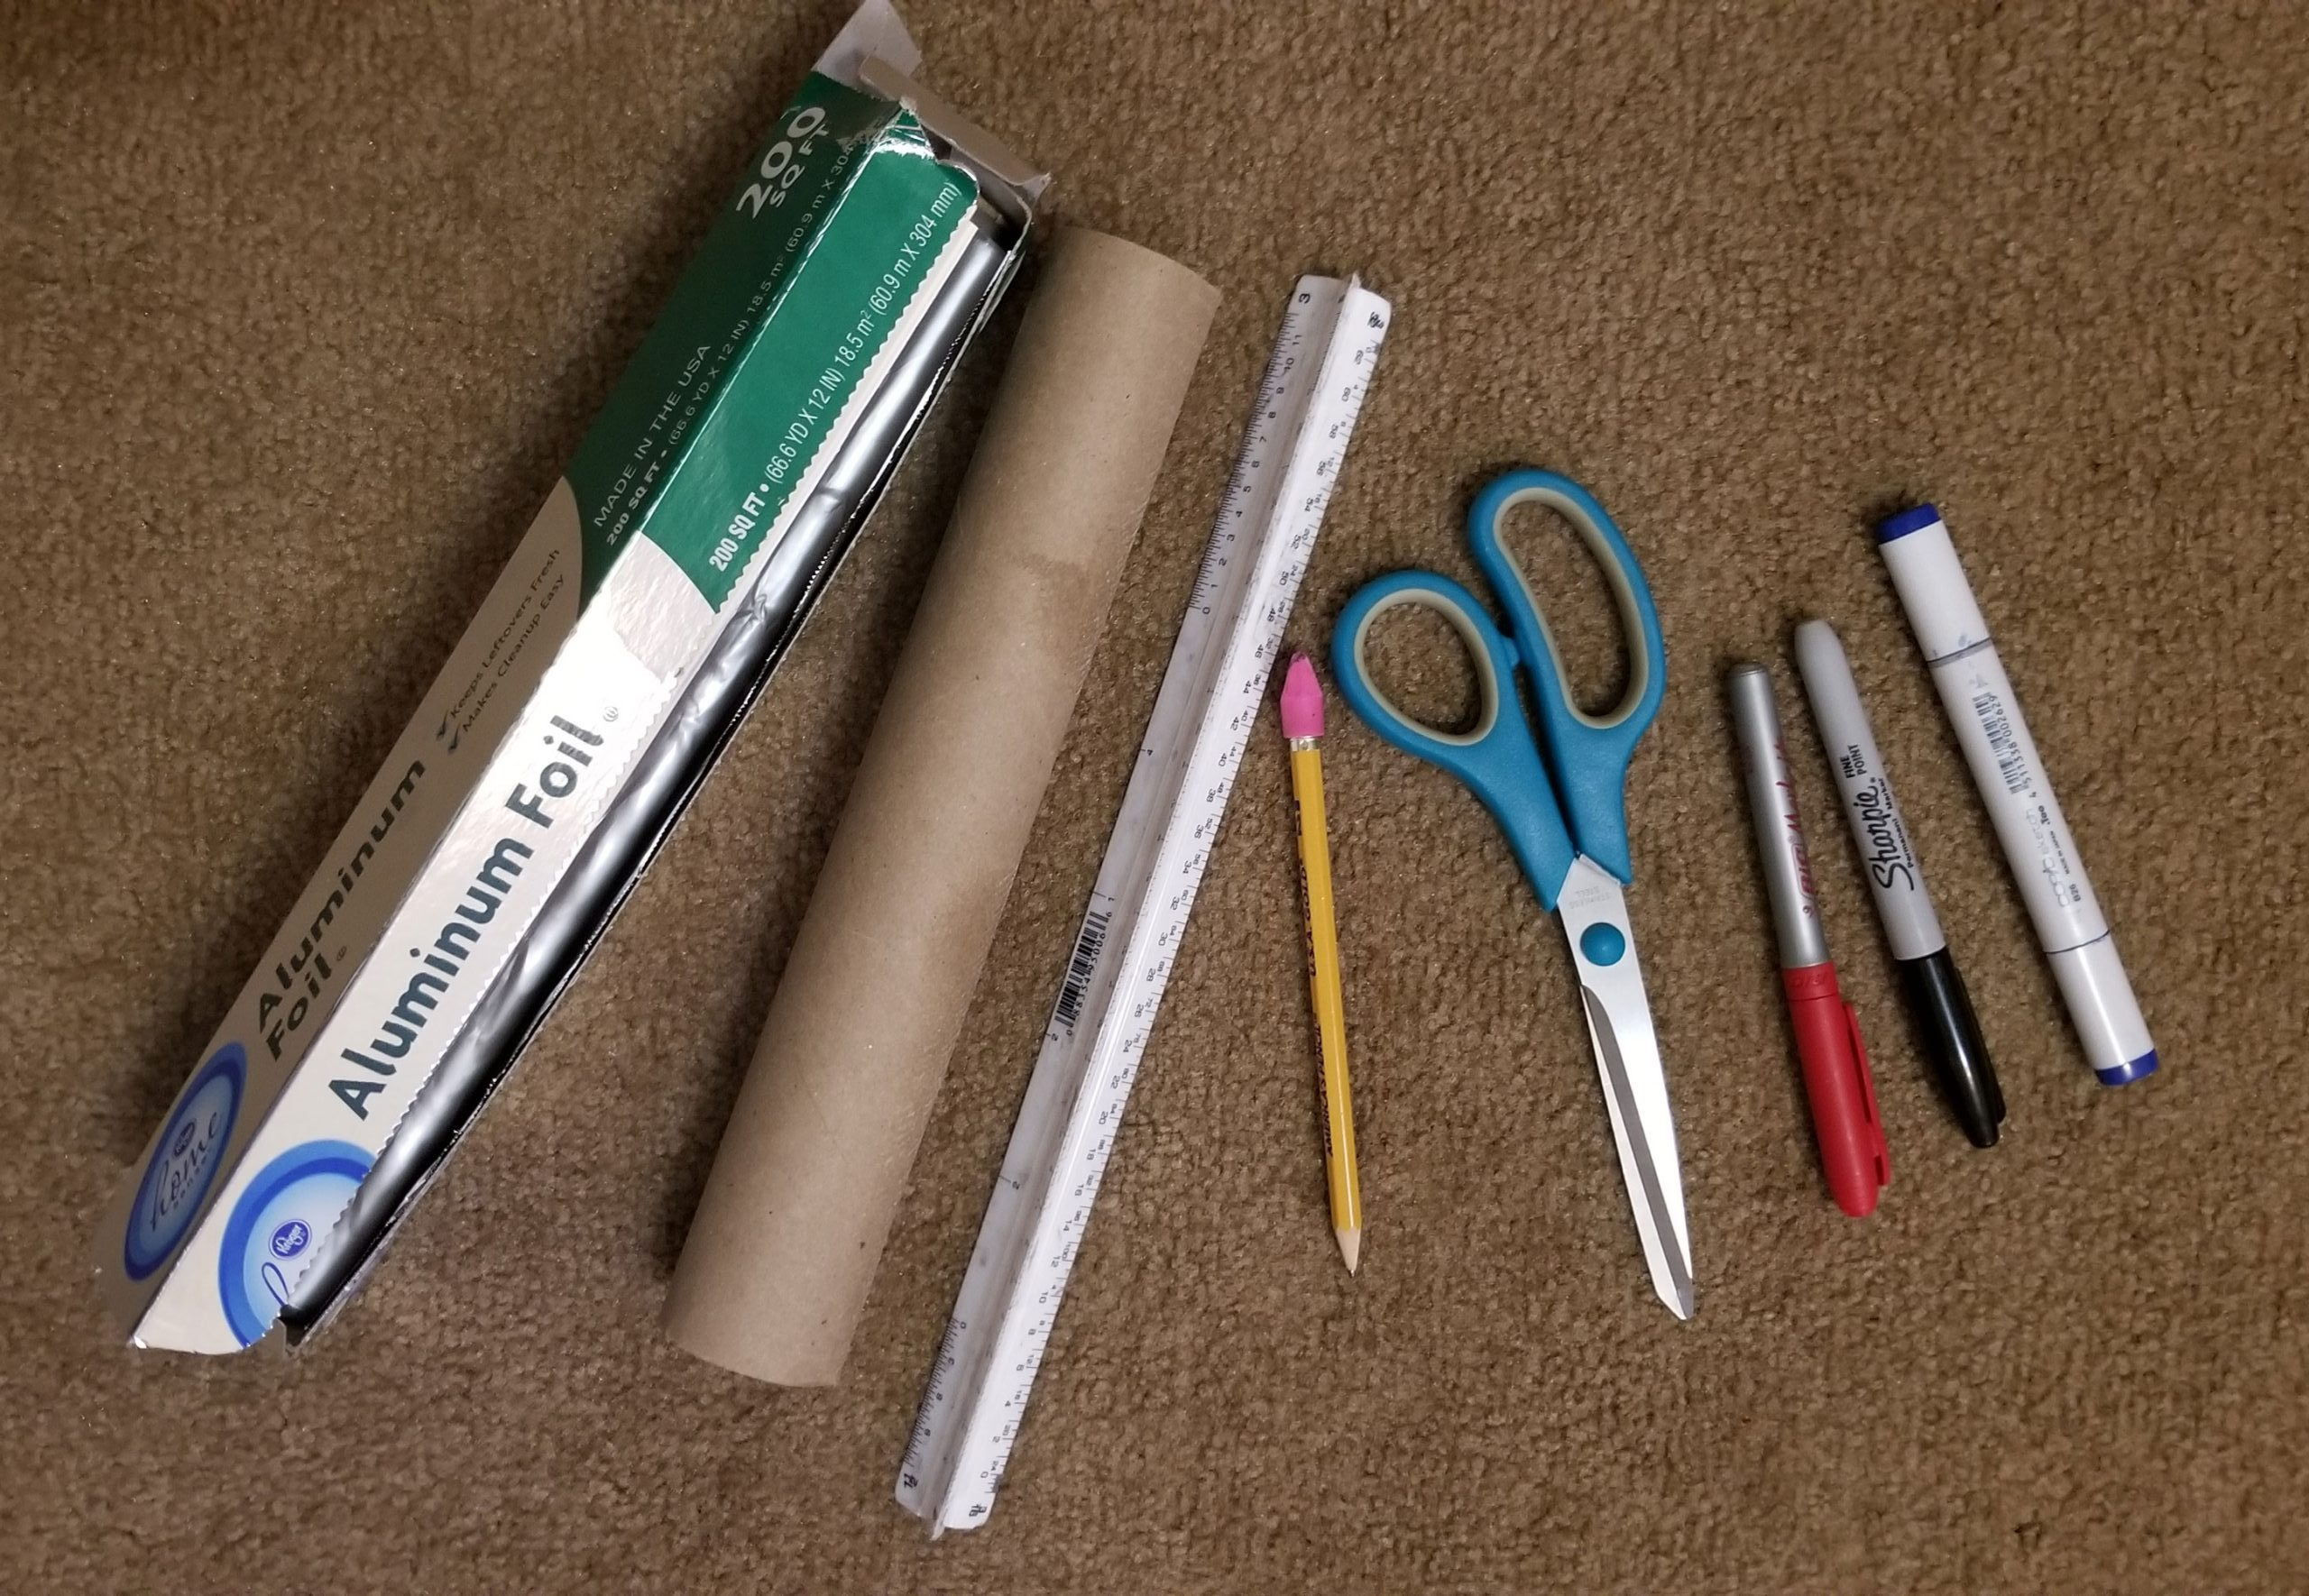 Art project materials, including scissors, pencil and foil.